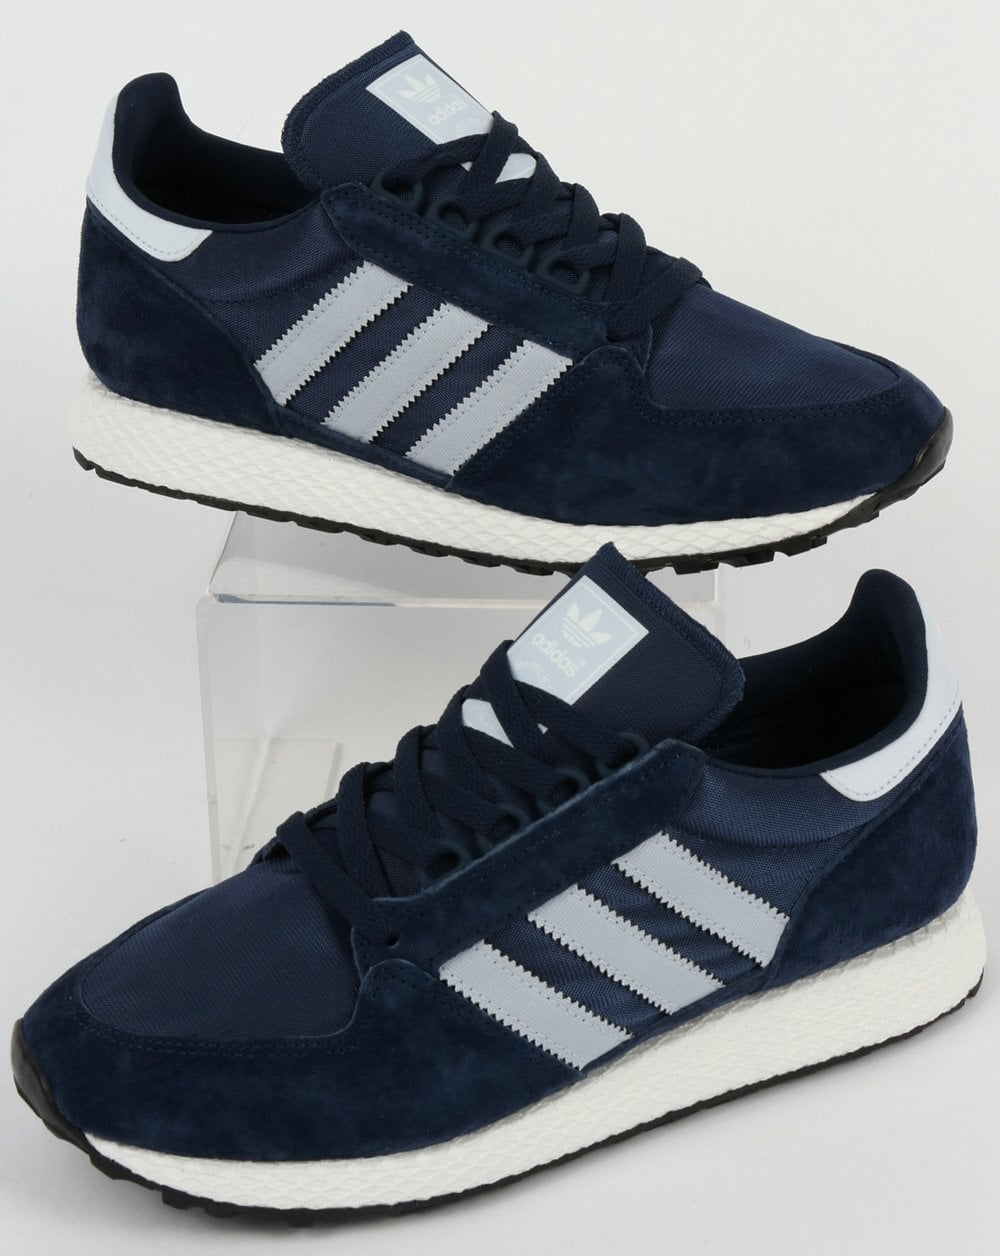 Adidas Forest Grove Trainers Navy, Blue